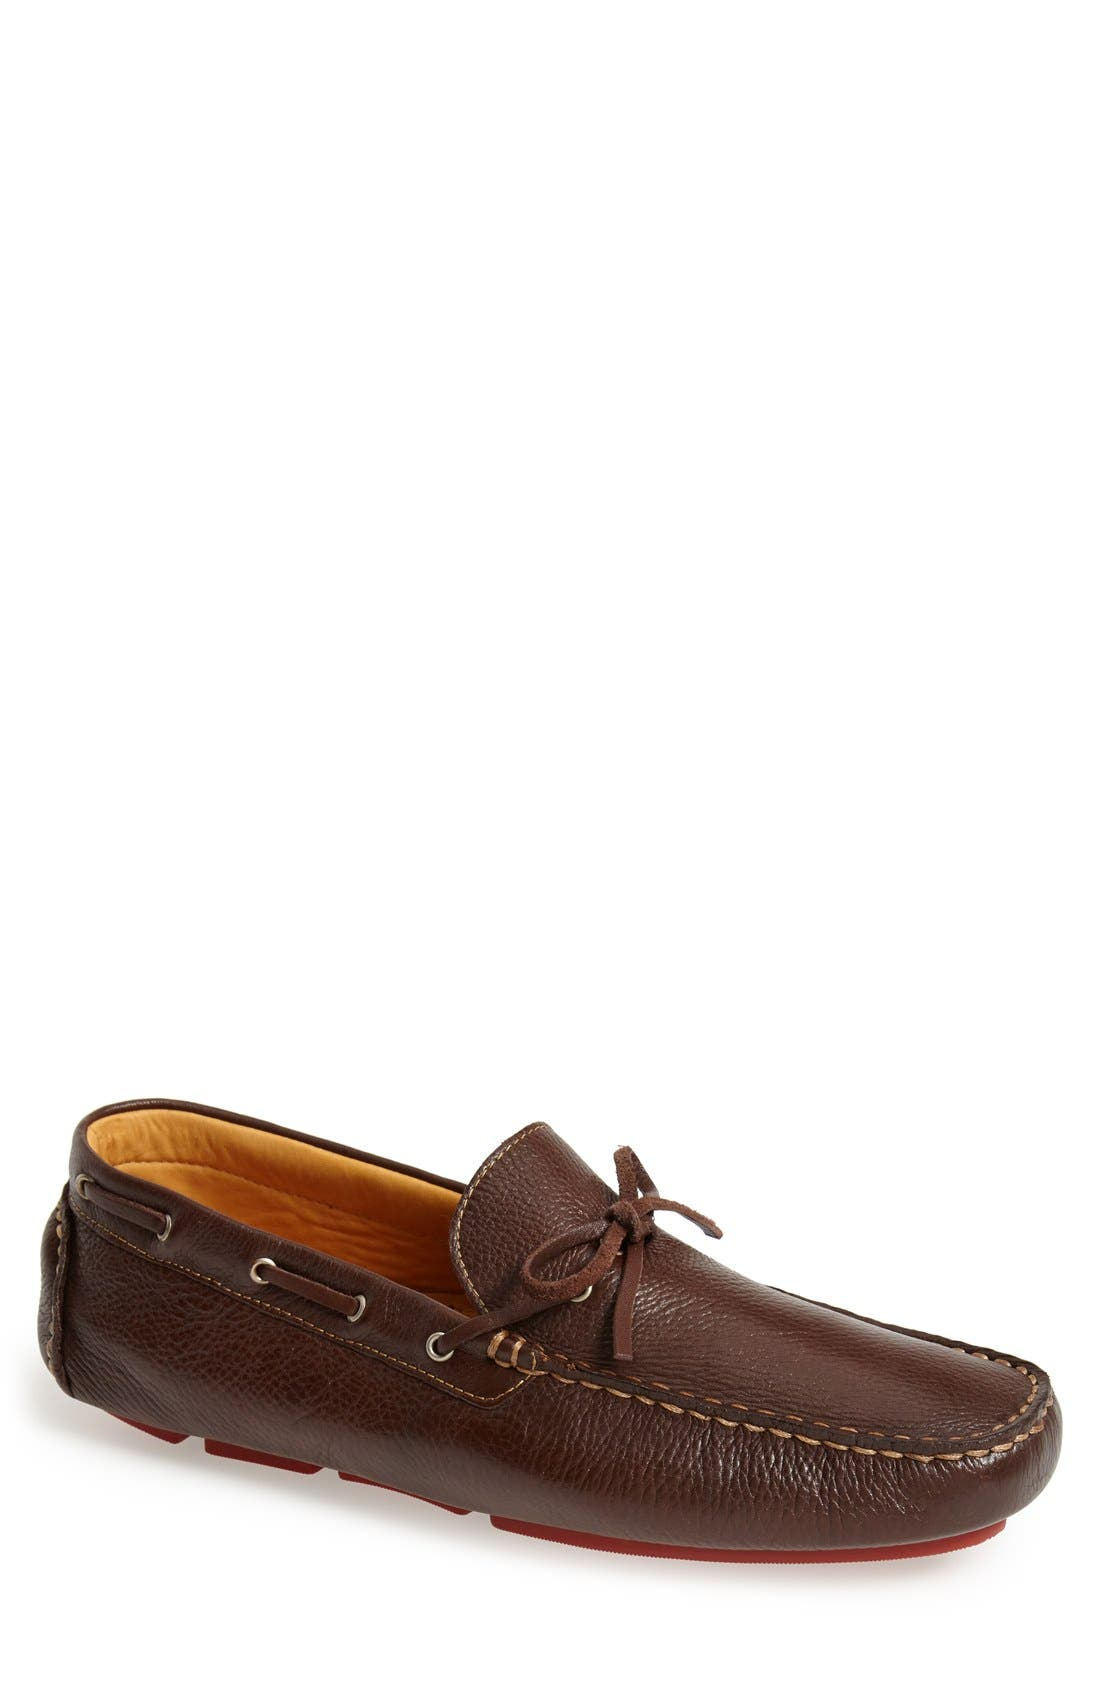 Main Image - Sandro Moscoloni 'Perry' Driving Shoe (Men)